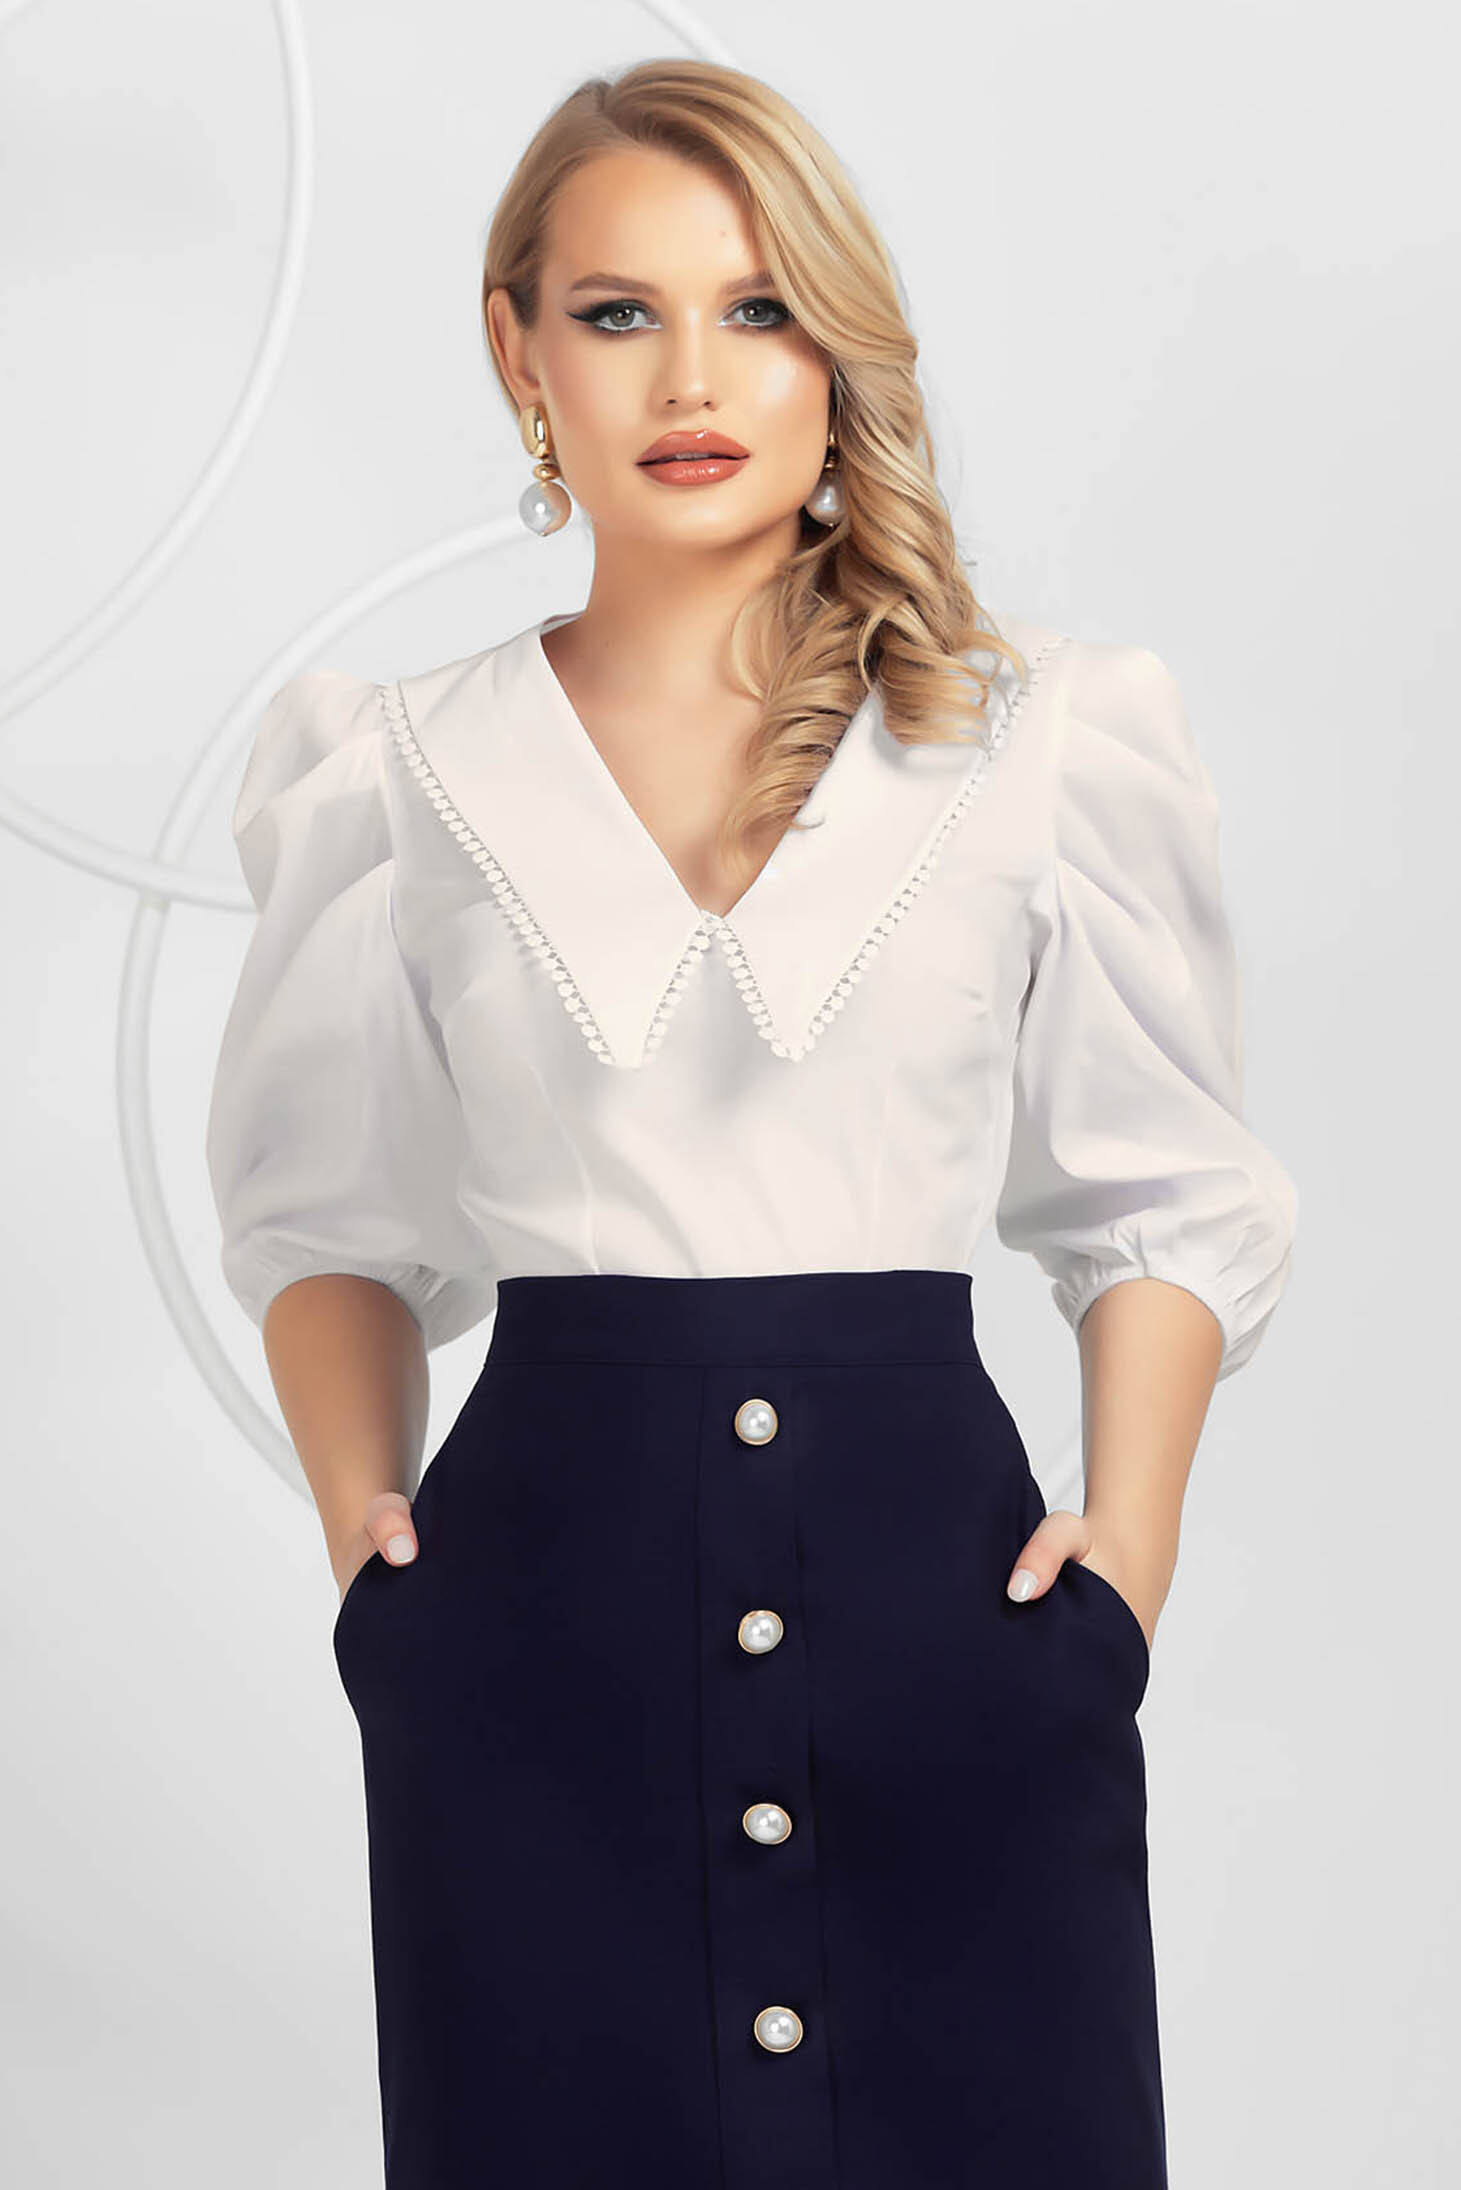 Ivory women`s shirt poplin, thin cotton high shoulders